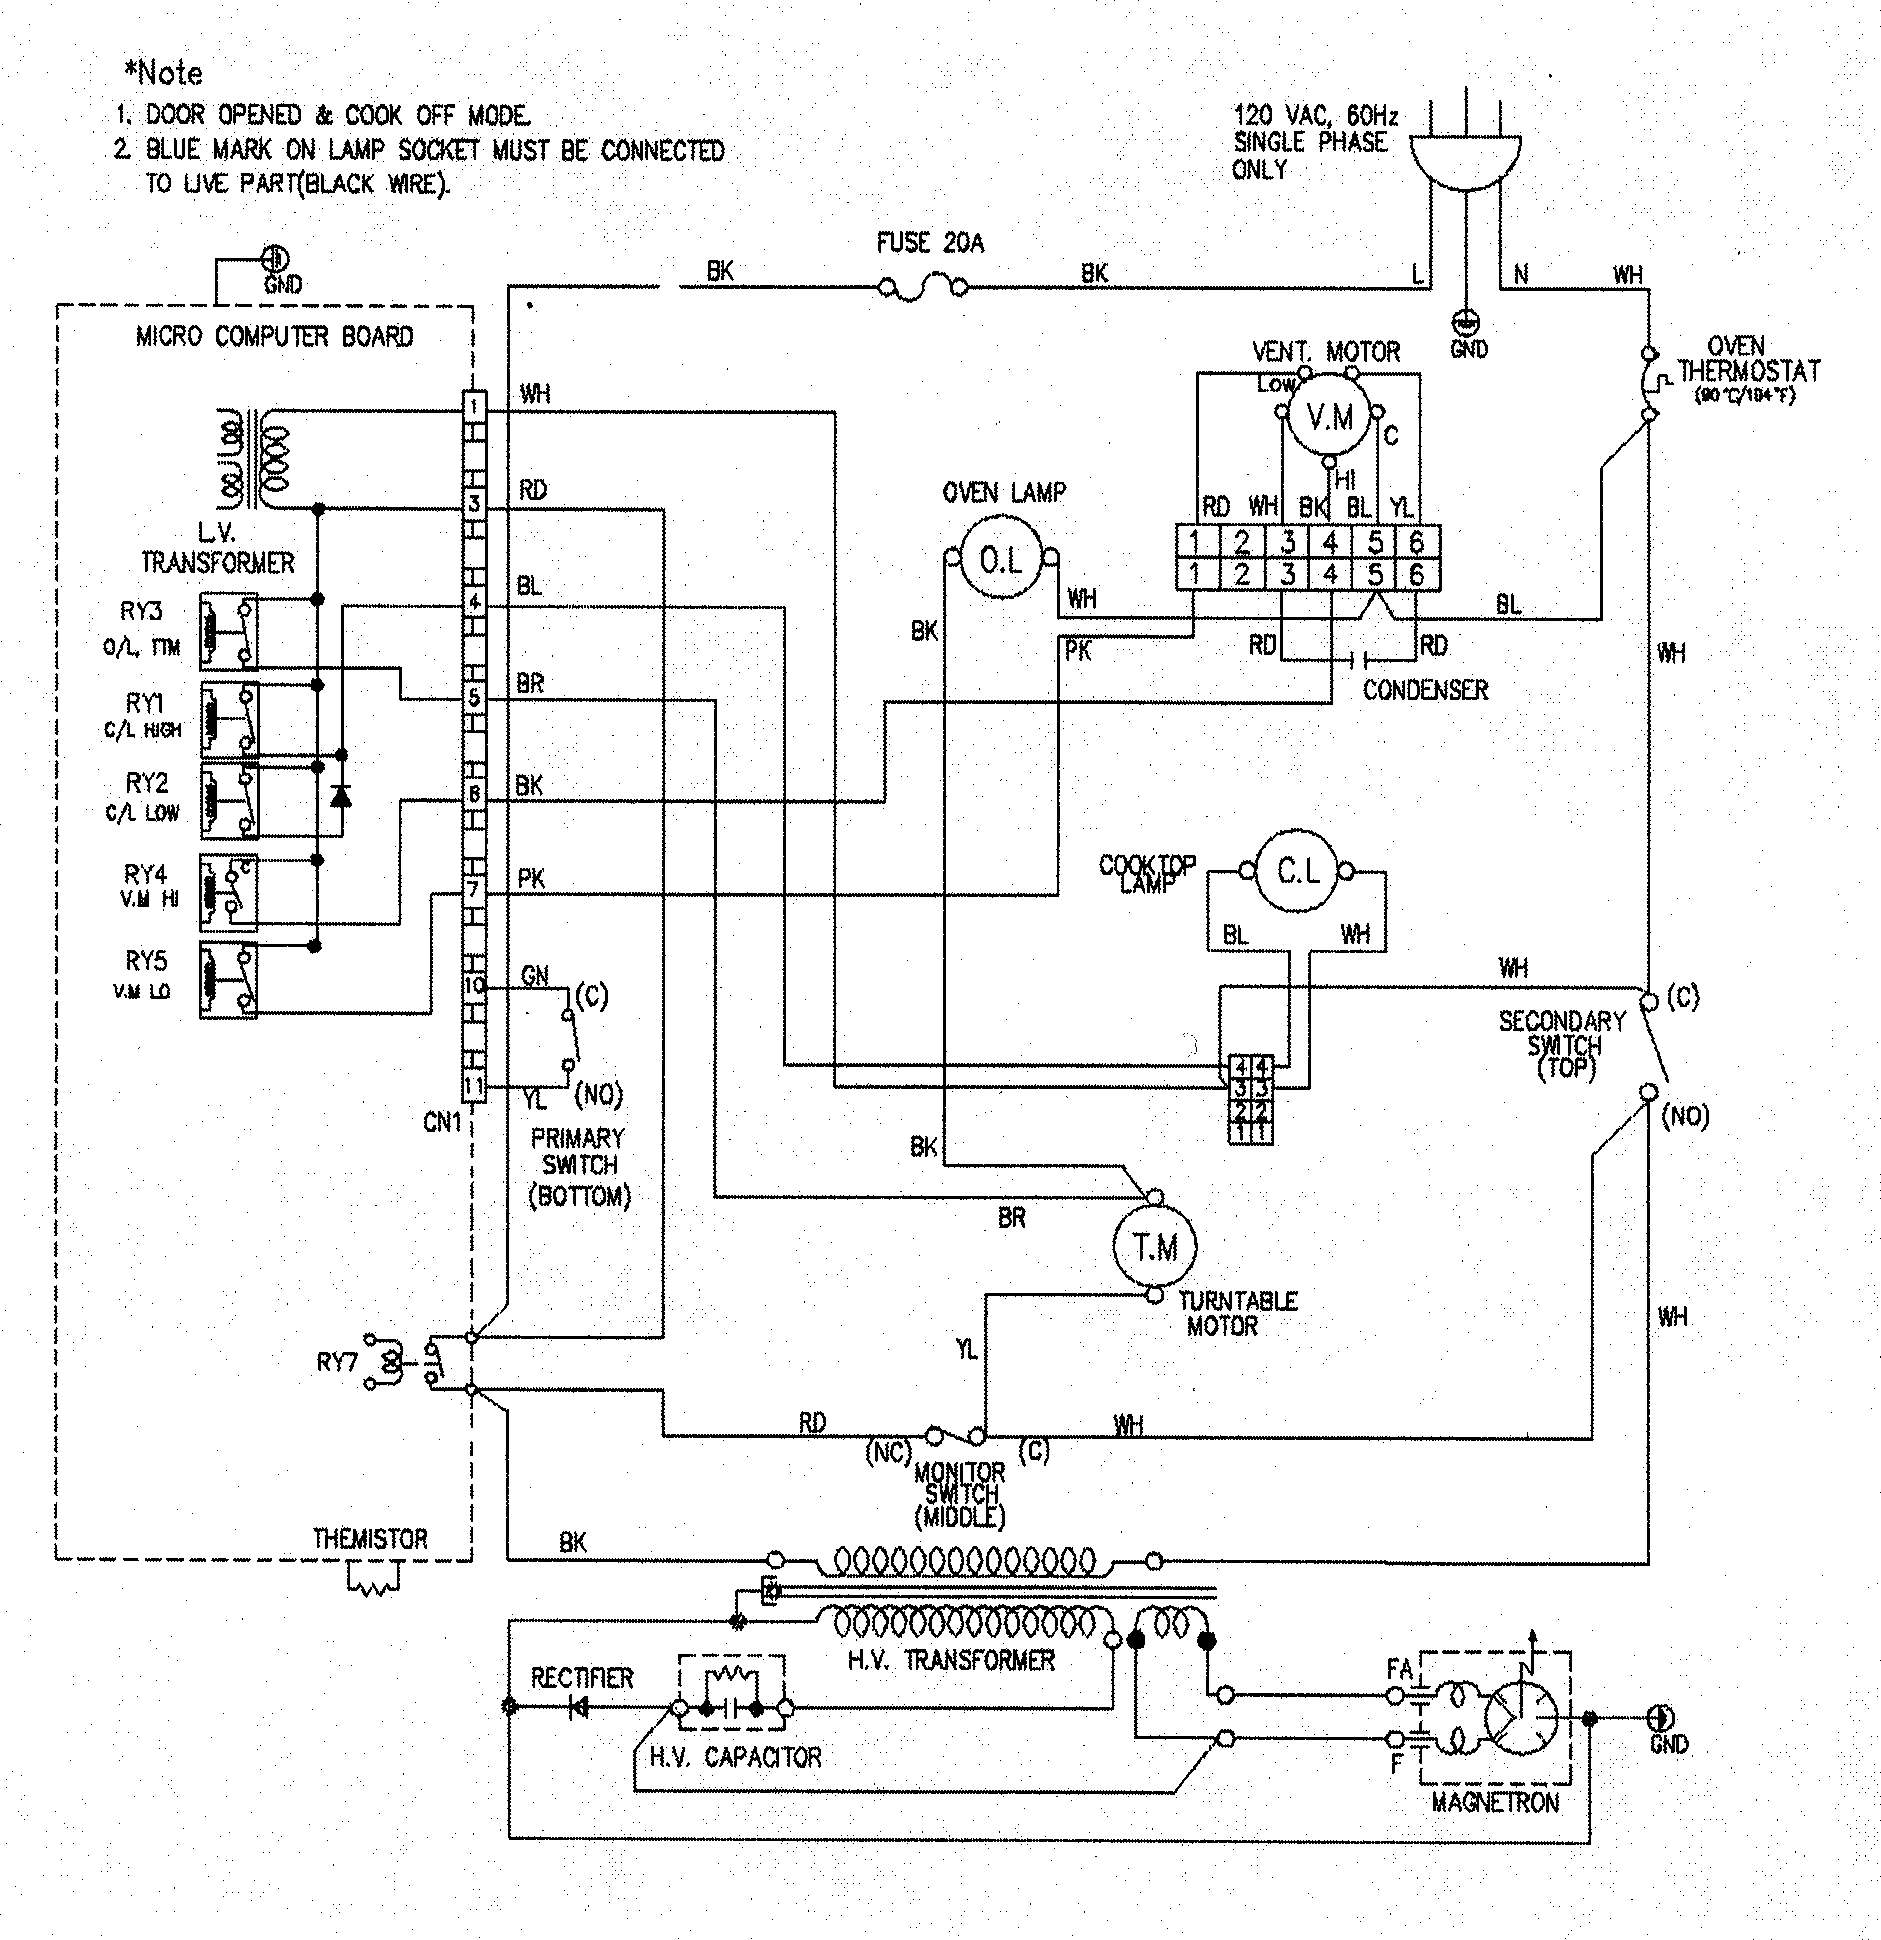 Kenmore Microwave Wiring Diagram - Wiring Diagram Bookmark on